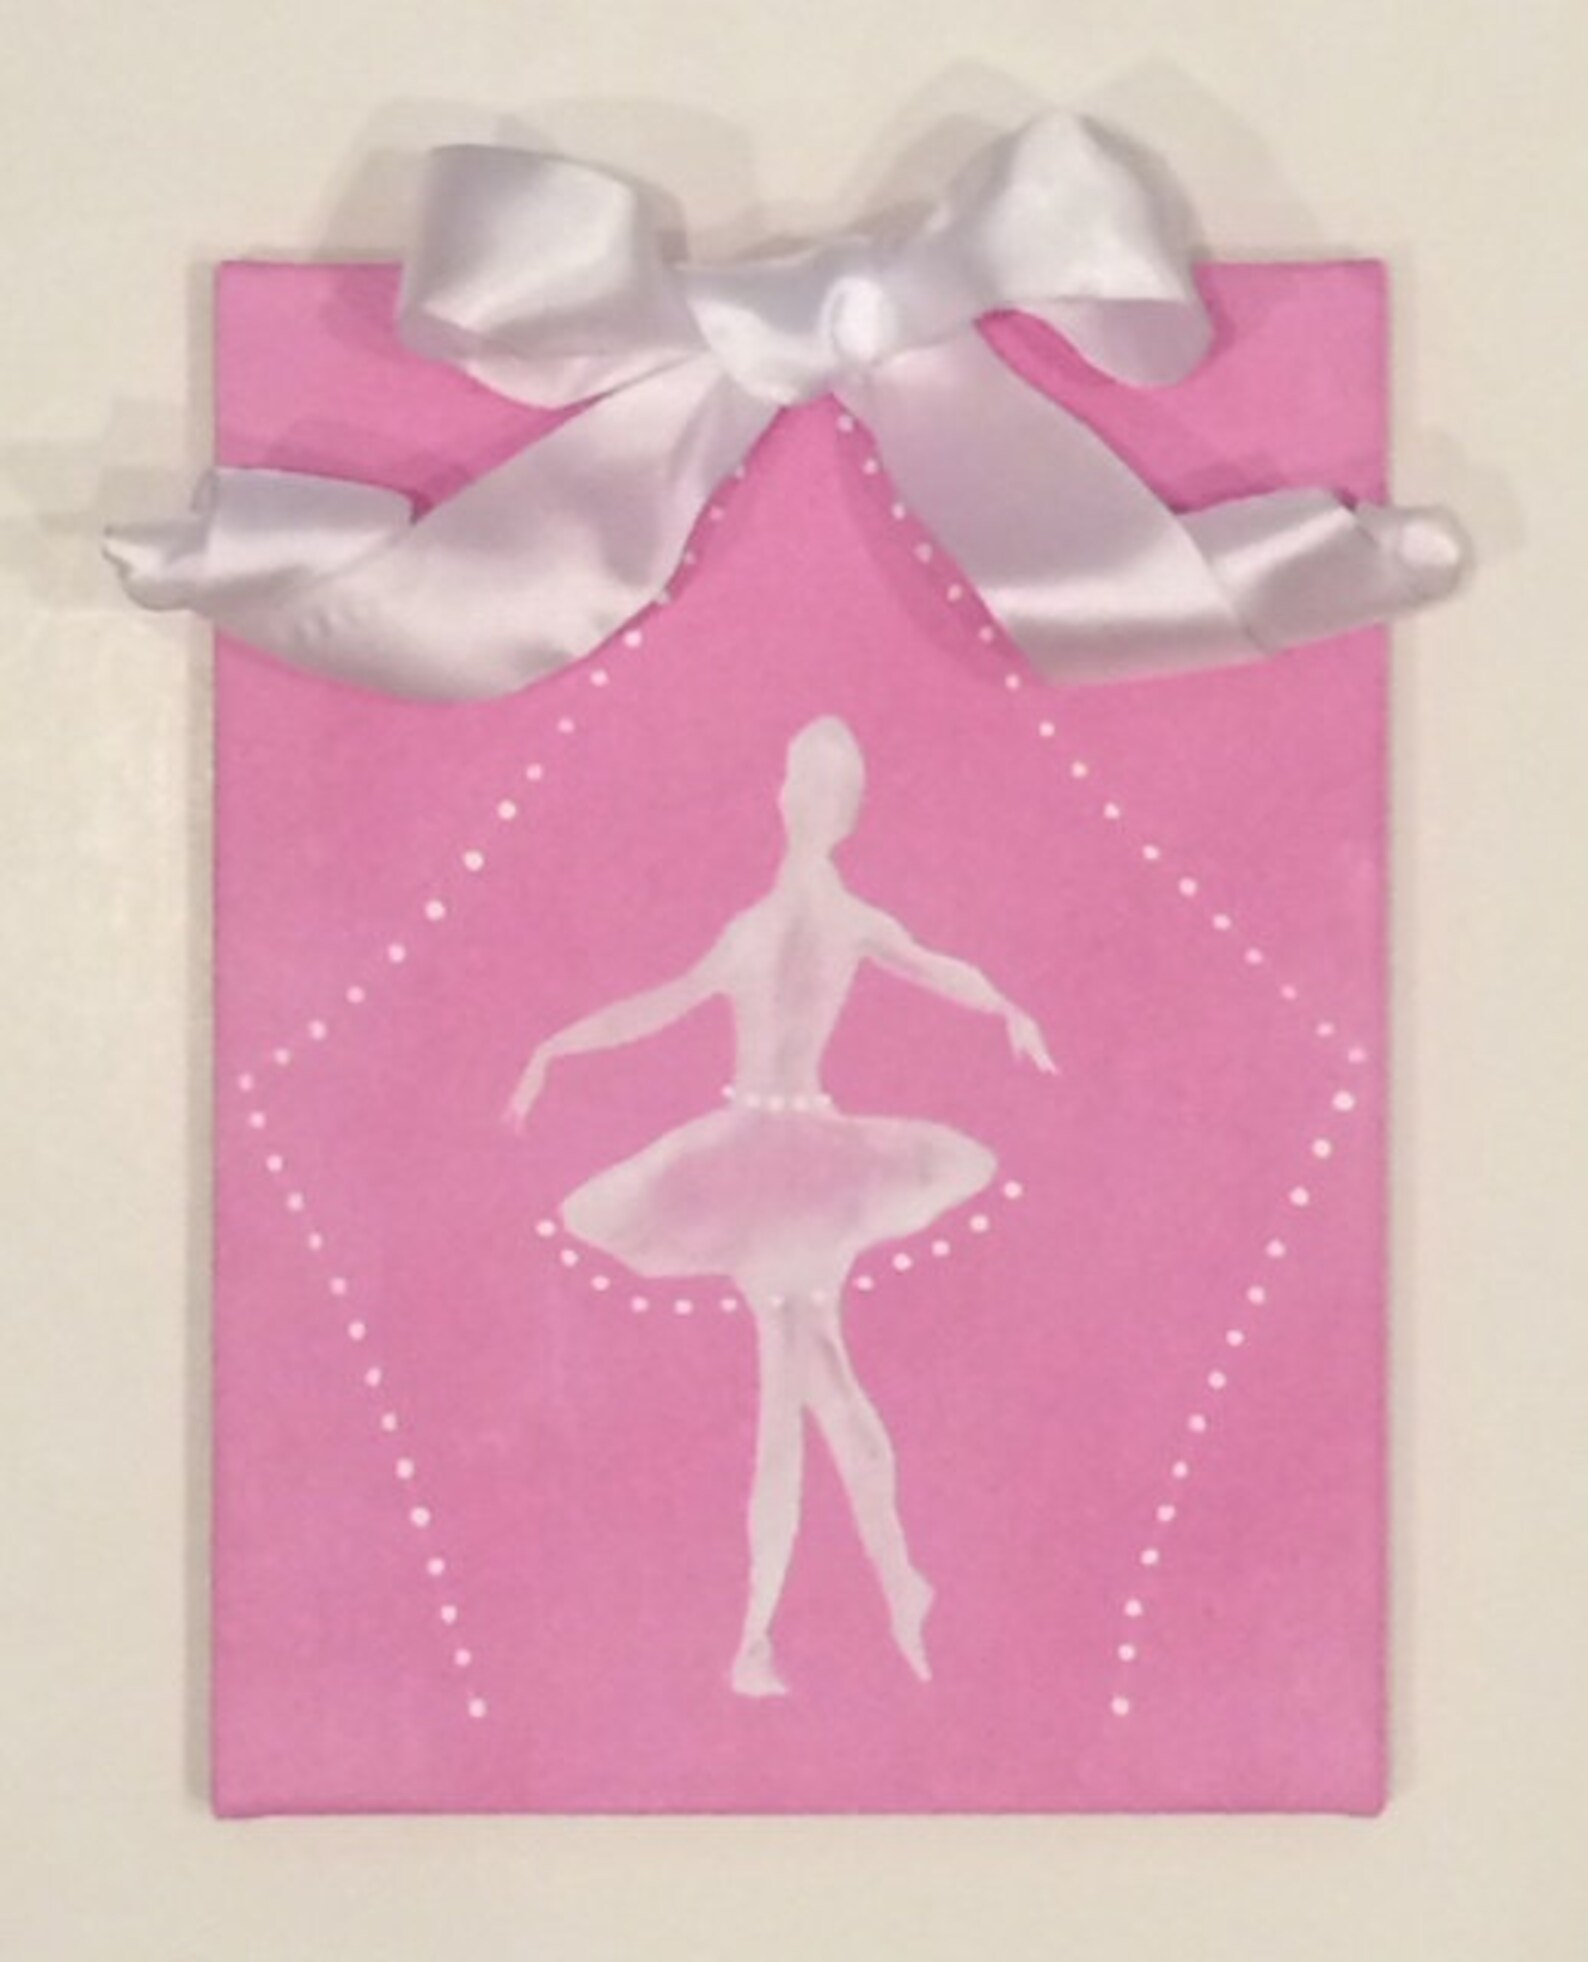 9x12 ballet canvas, ballerina art, ballet art, canvas art, girls room decor, pink girls room, dance art, ballet art, girls rooms